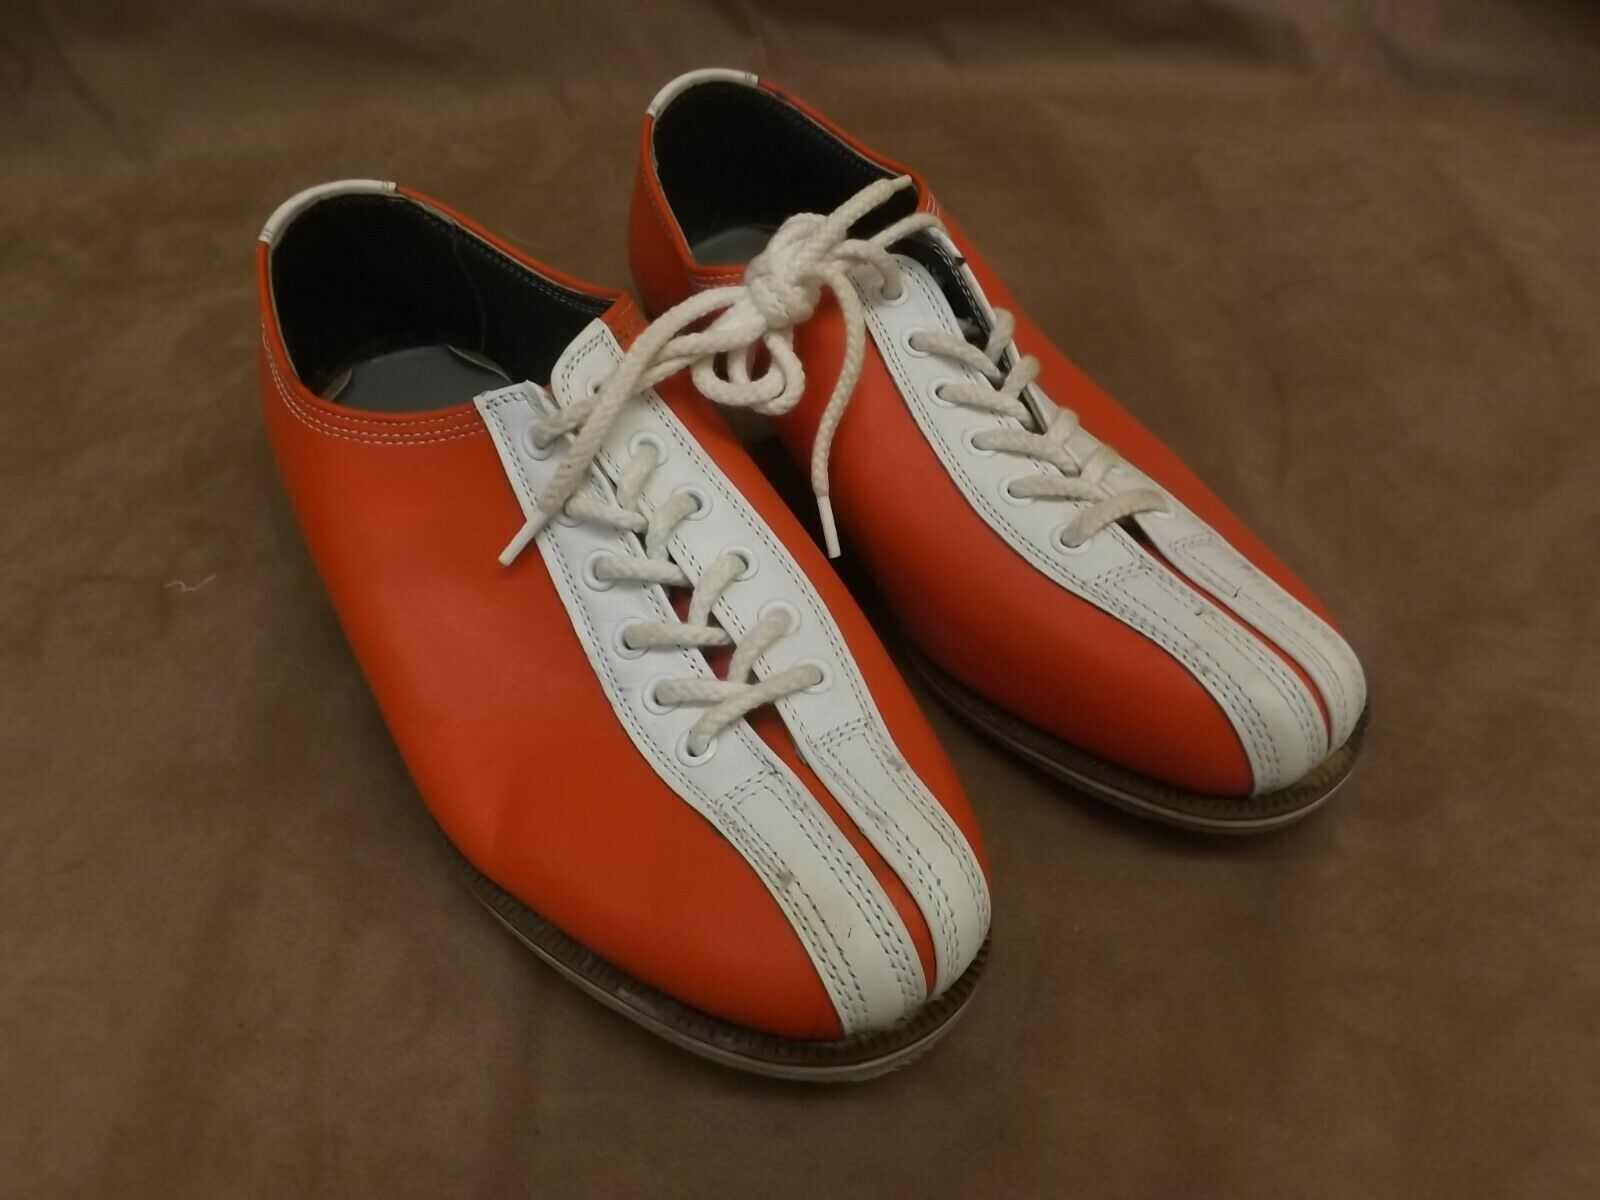 VTG NEW Santa orange White Leather Soles & Uppers Rental Bowling shoes Mens 6.5